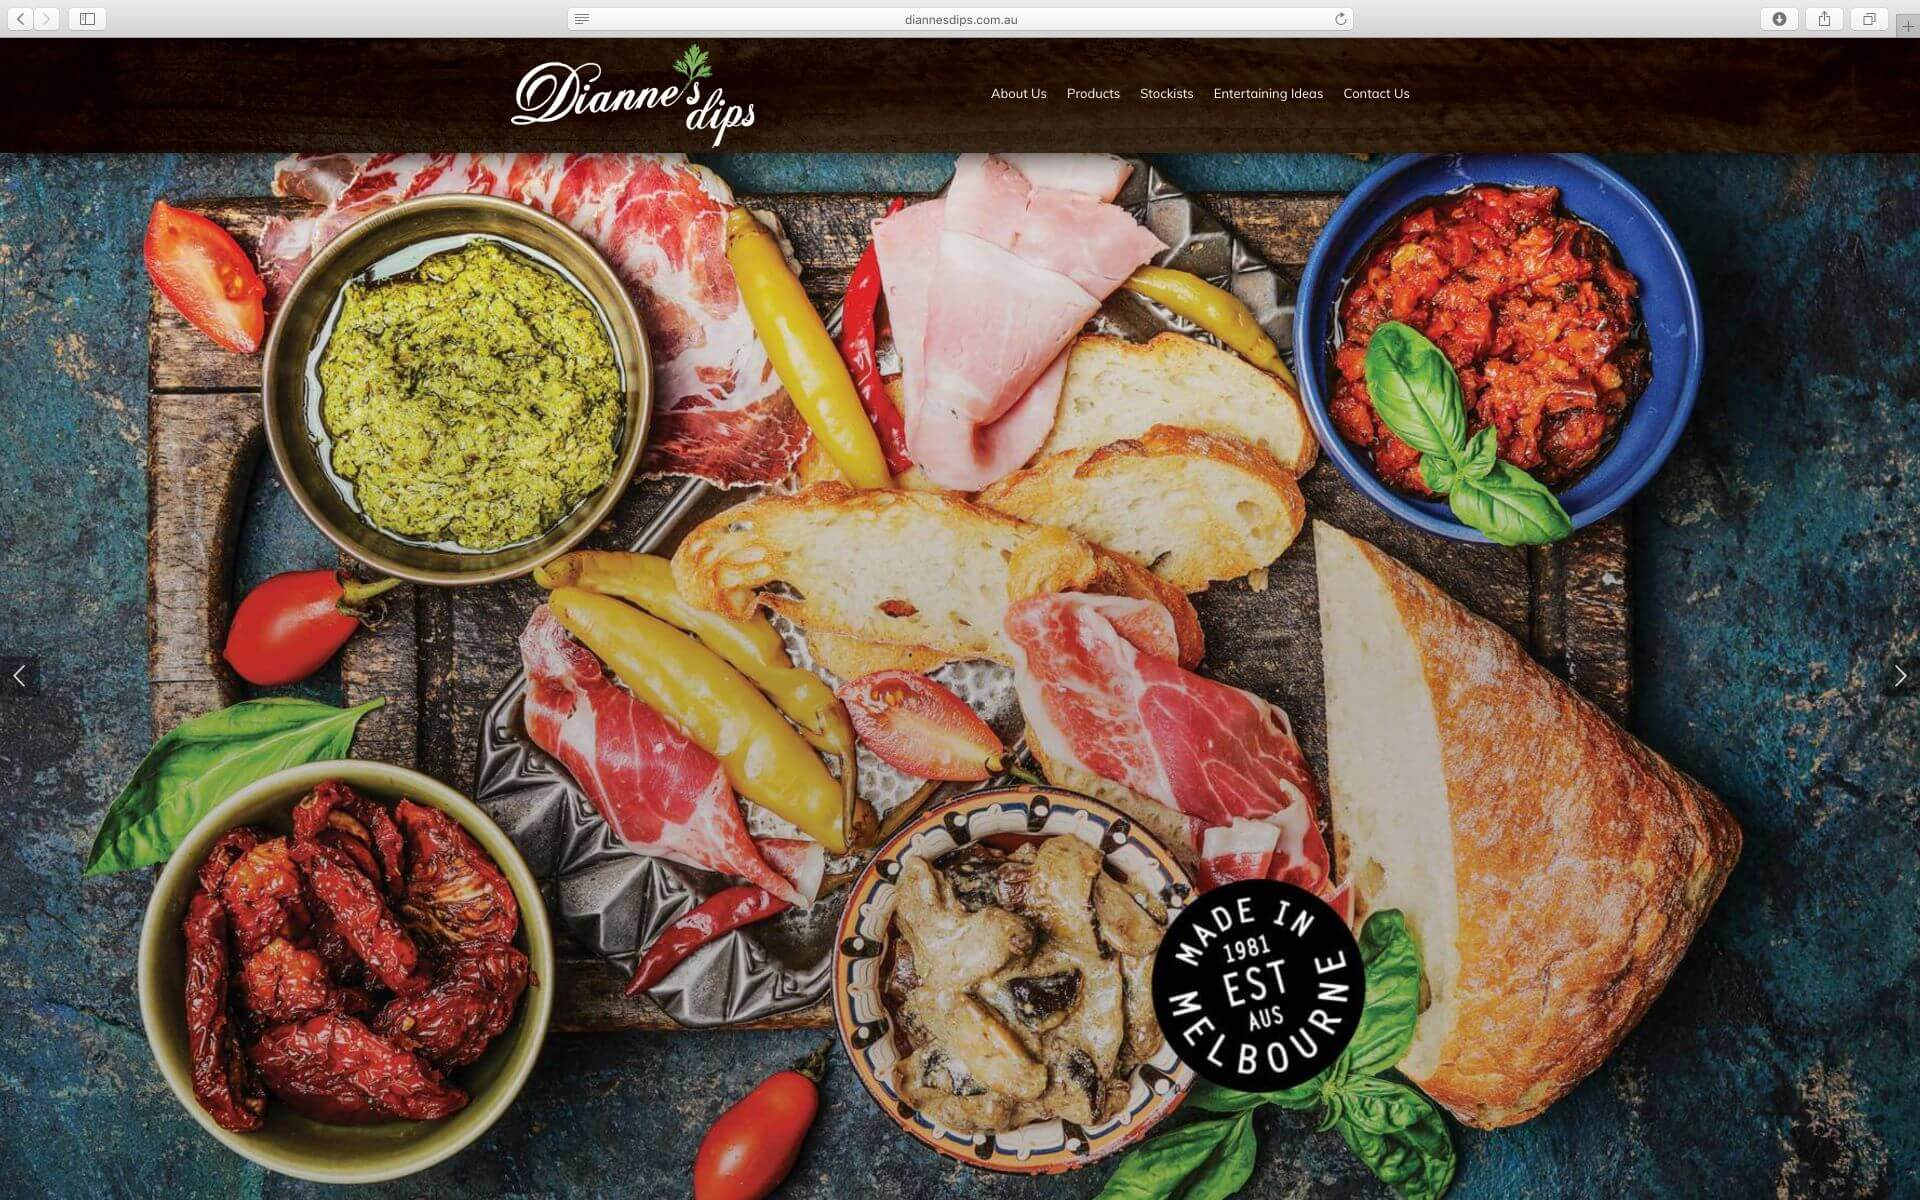 Dianne's Dips Website